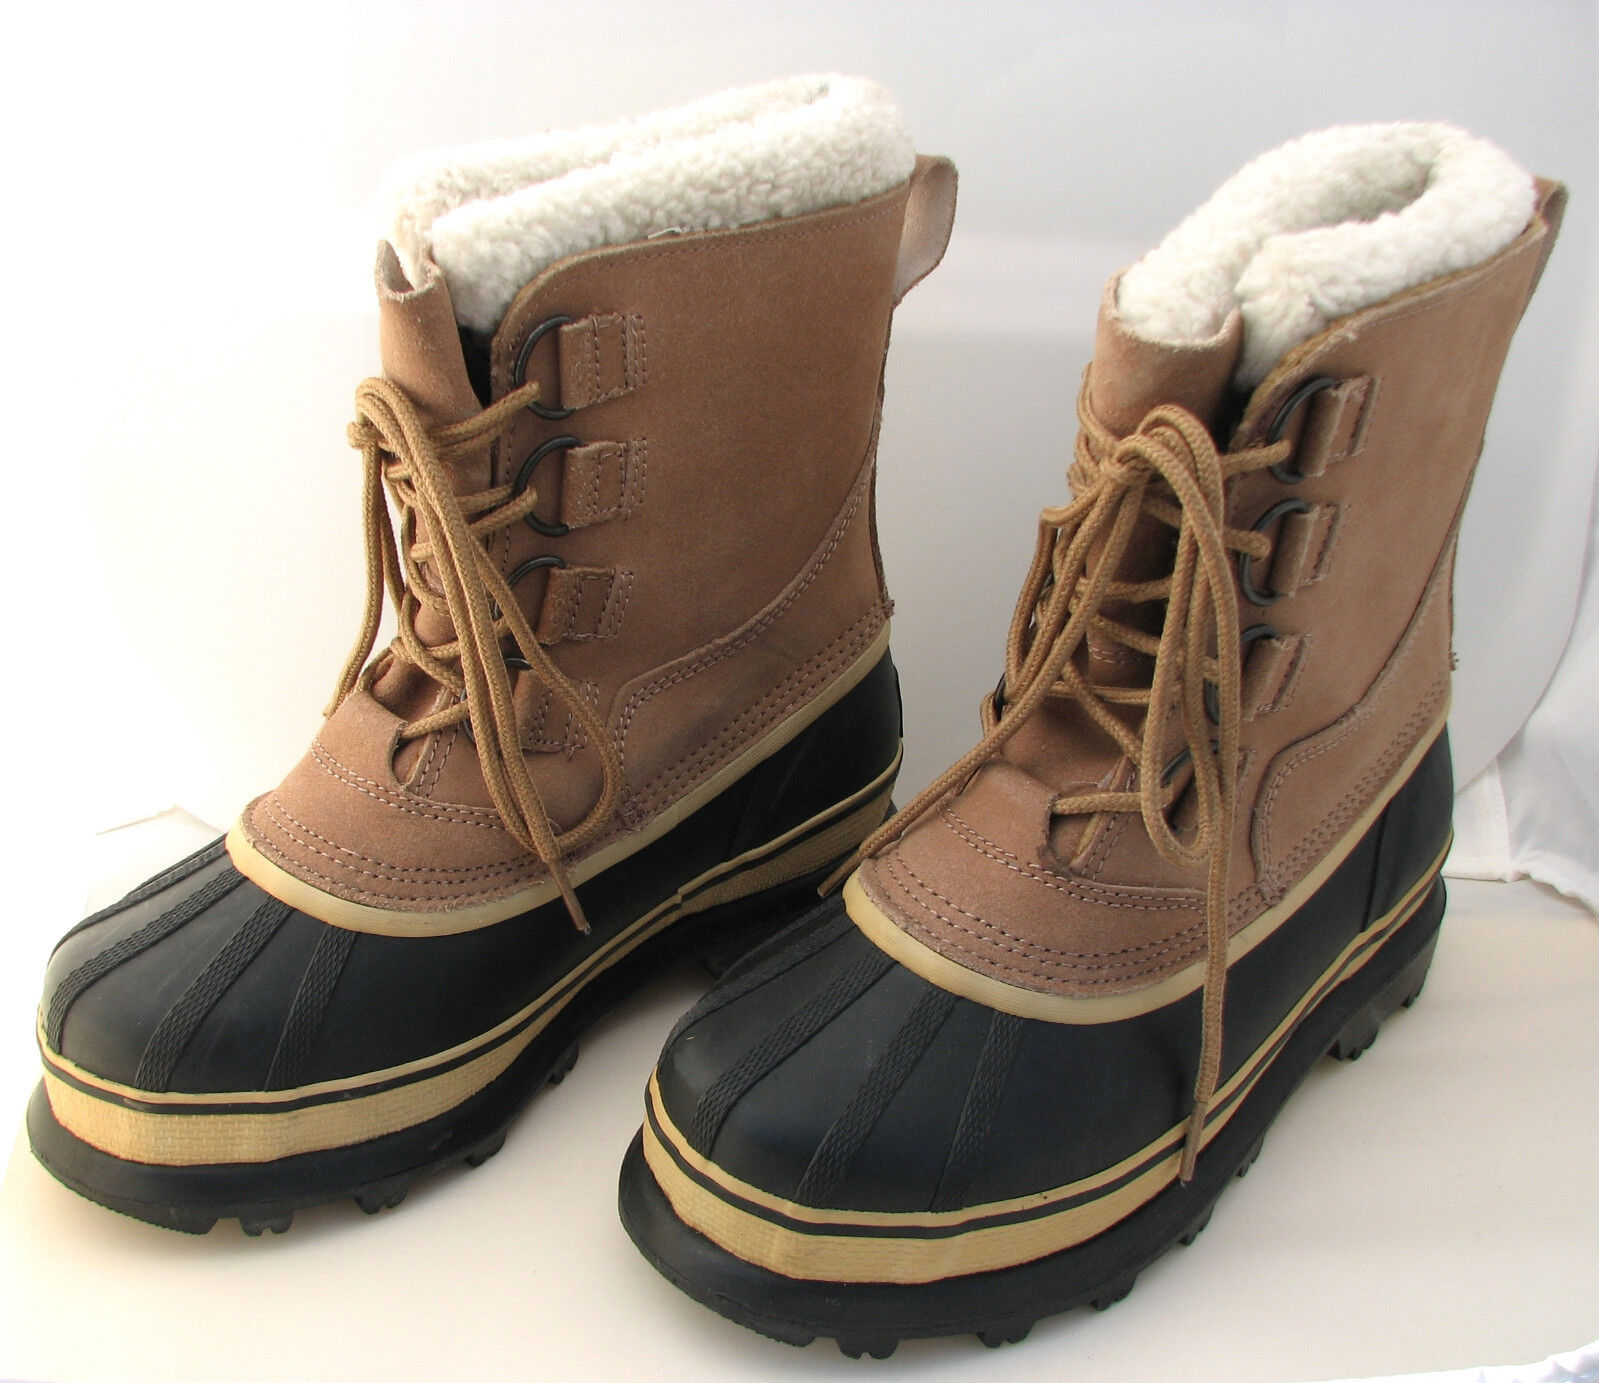 Crater Ridge Women's Suede & Rubber Uppers Lined Winter Boots Size 7 LIKE-NU